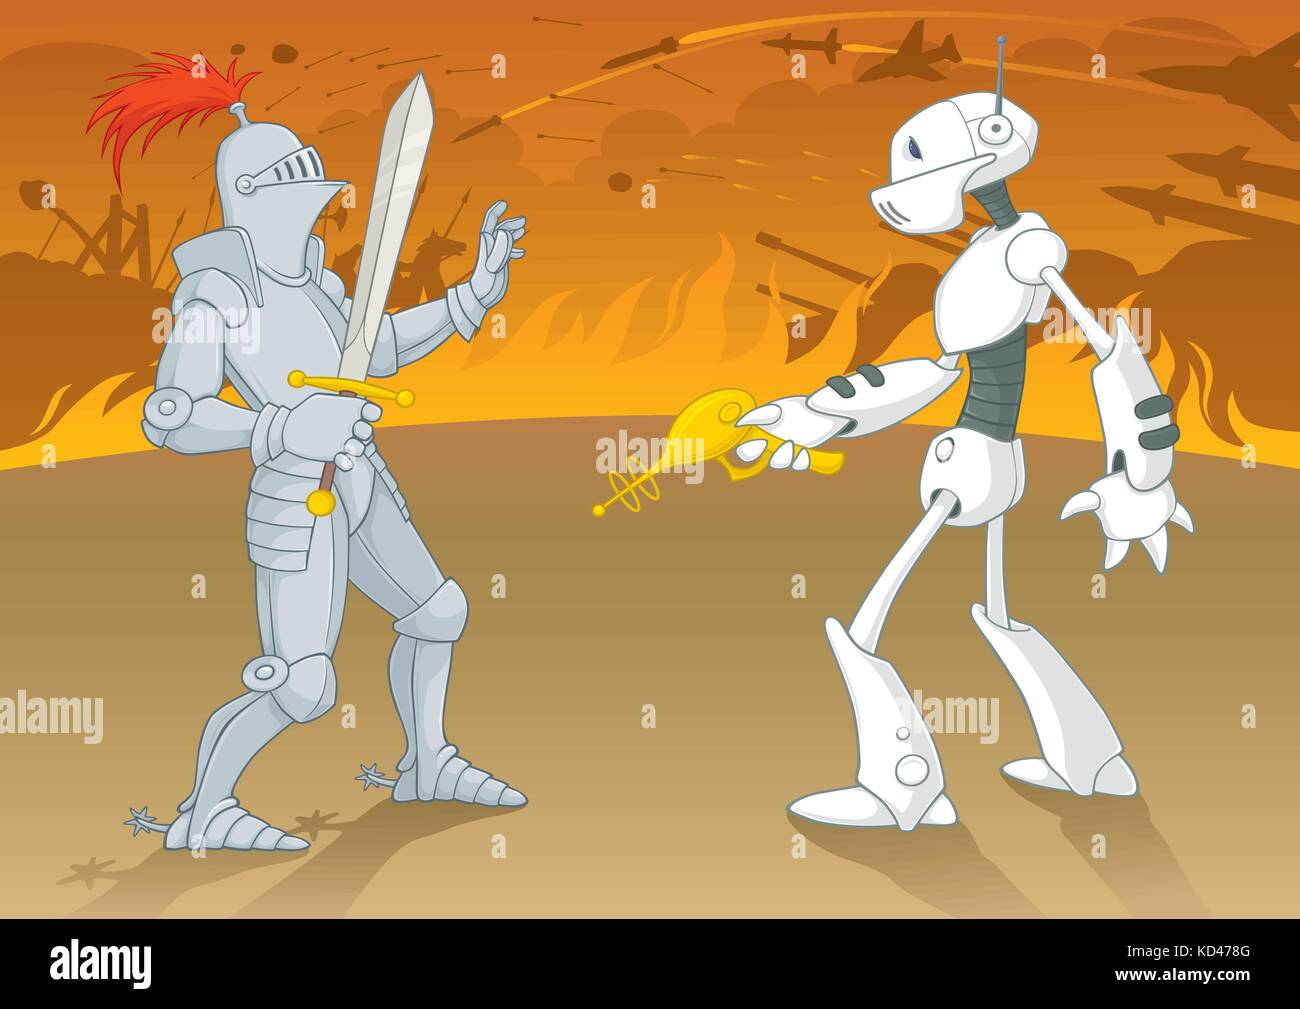 Vector illustration of a battle between the archaic and futuristic armies, showing the technological development - Stock Vector